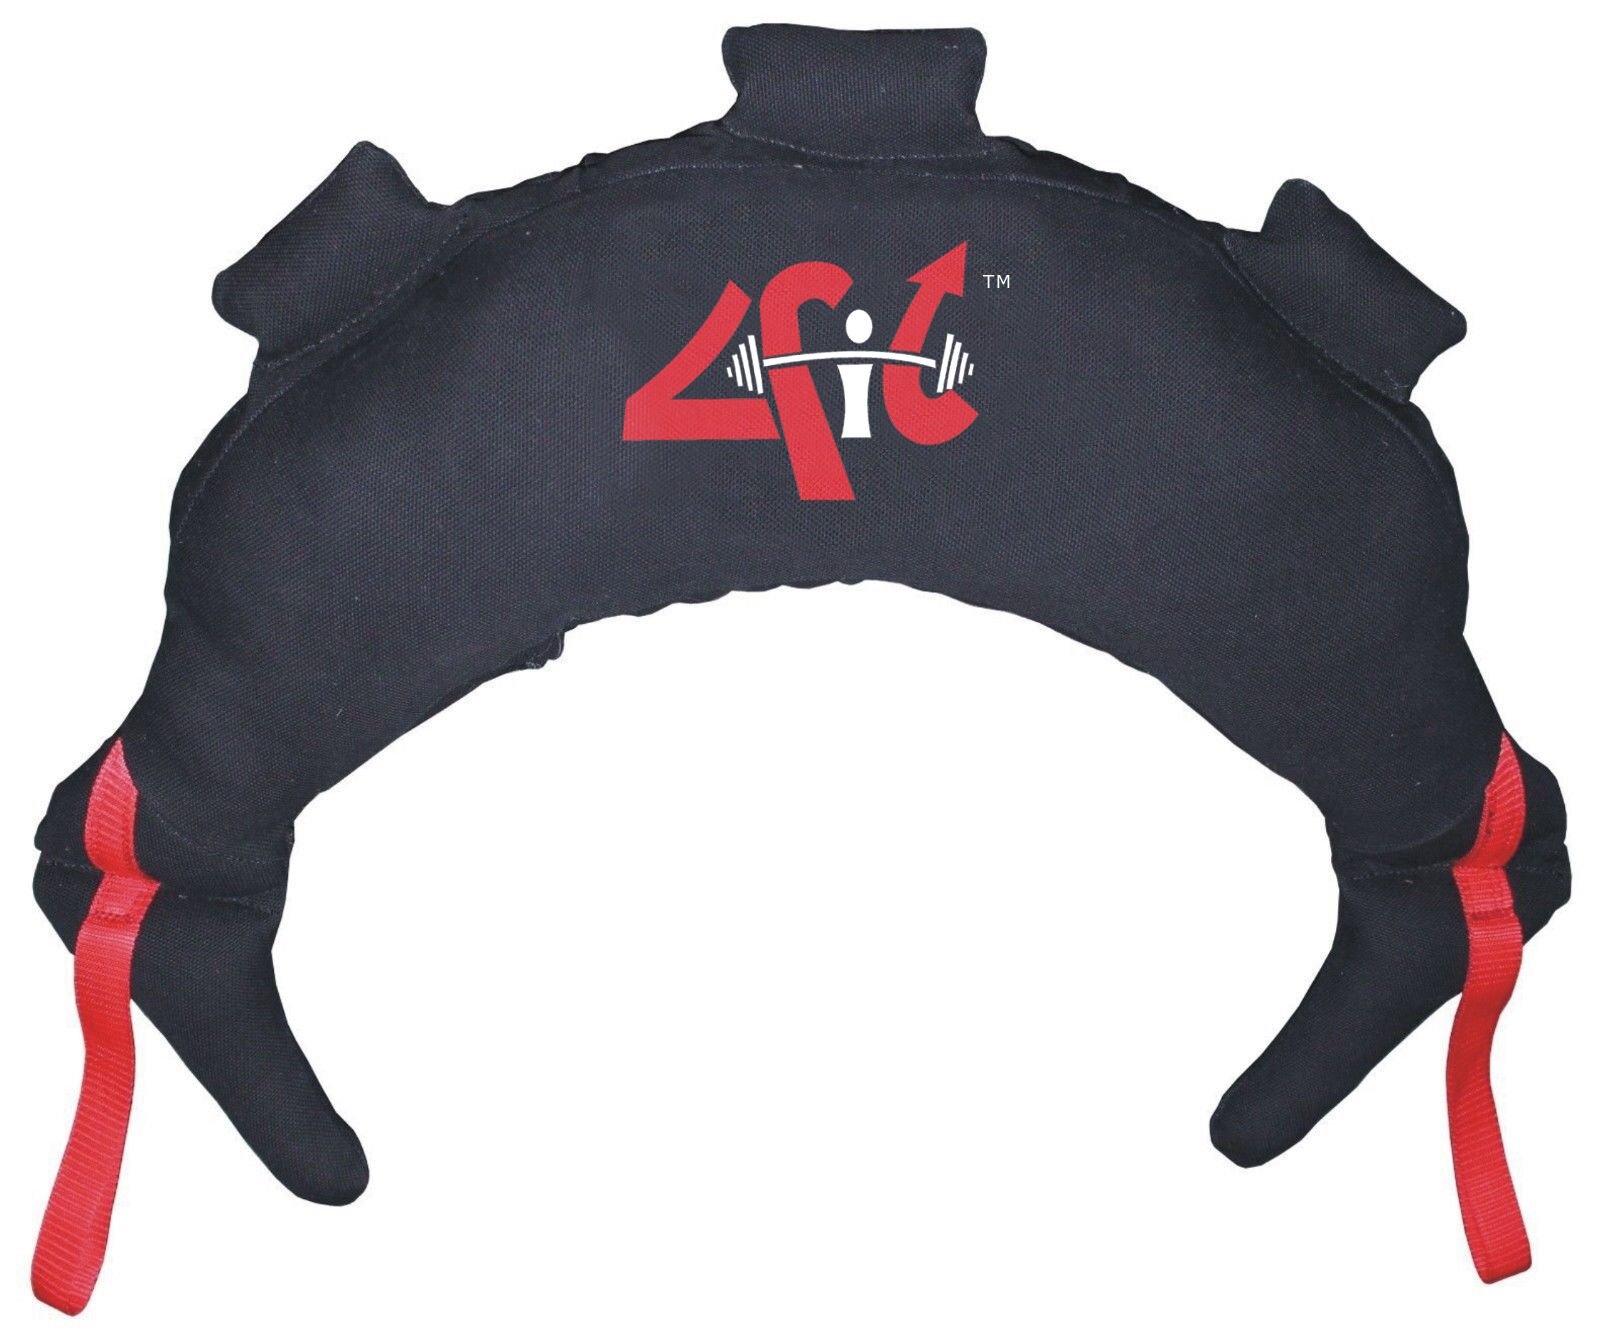 4Fit™ FITNESS GYM TRAINING BULGARIAN STRENGTHEN WORKOUT CANVAS SAND BAG BULGARIAN TRAINING STYLE f2b46b